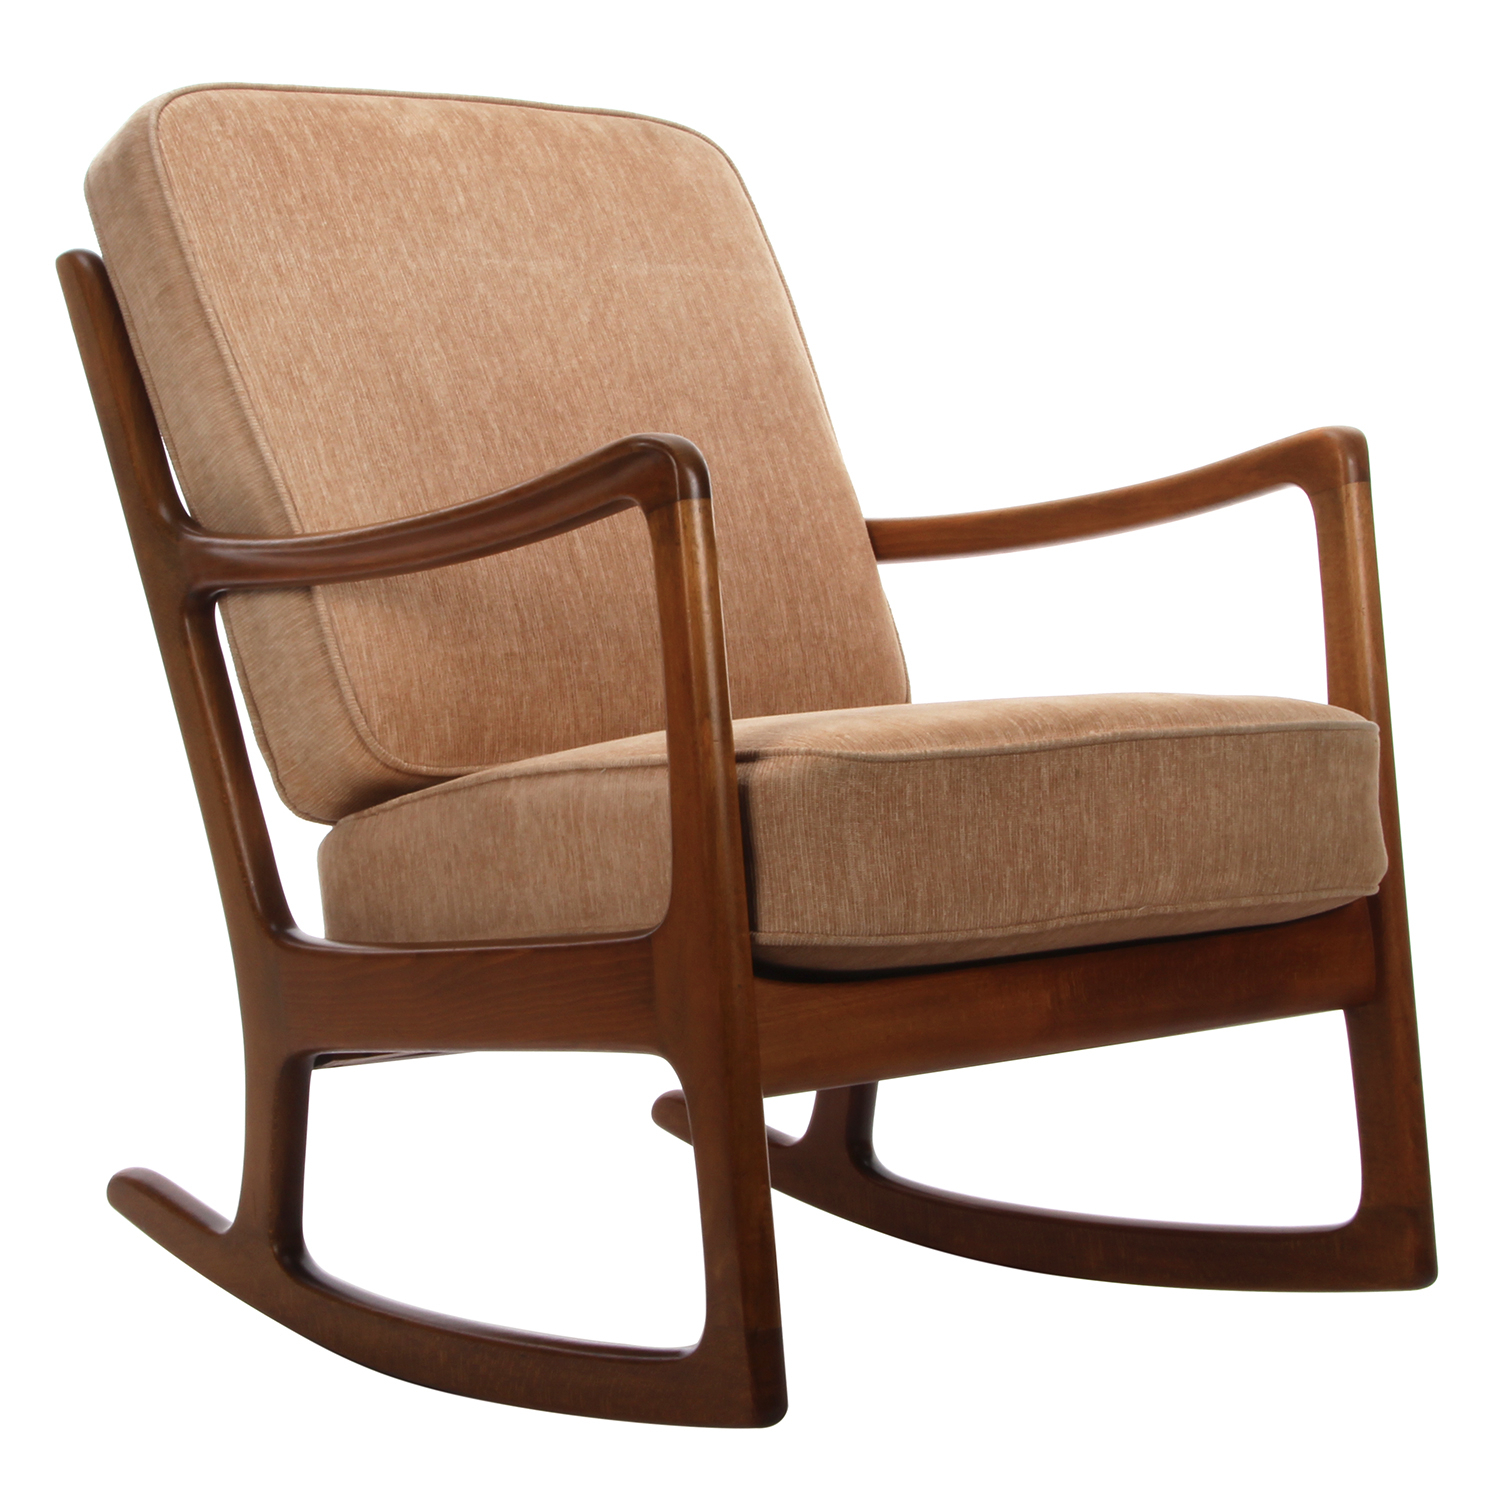 Fd 108 Rocking Chair In Nevies Mid Century Modern Fabric Rocking Chairs (#3 of 20)